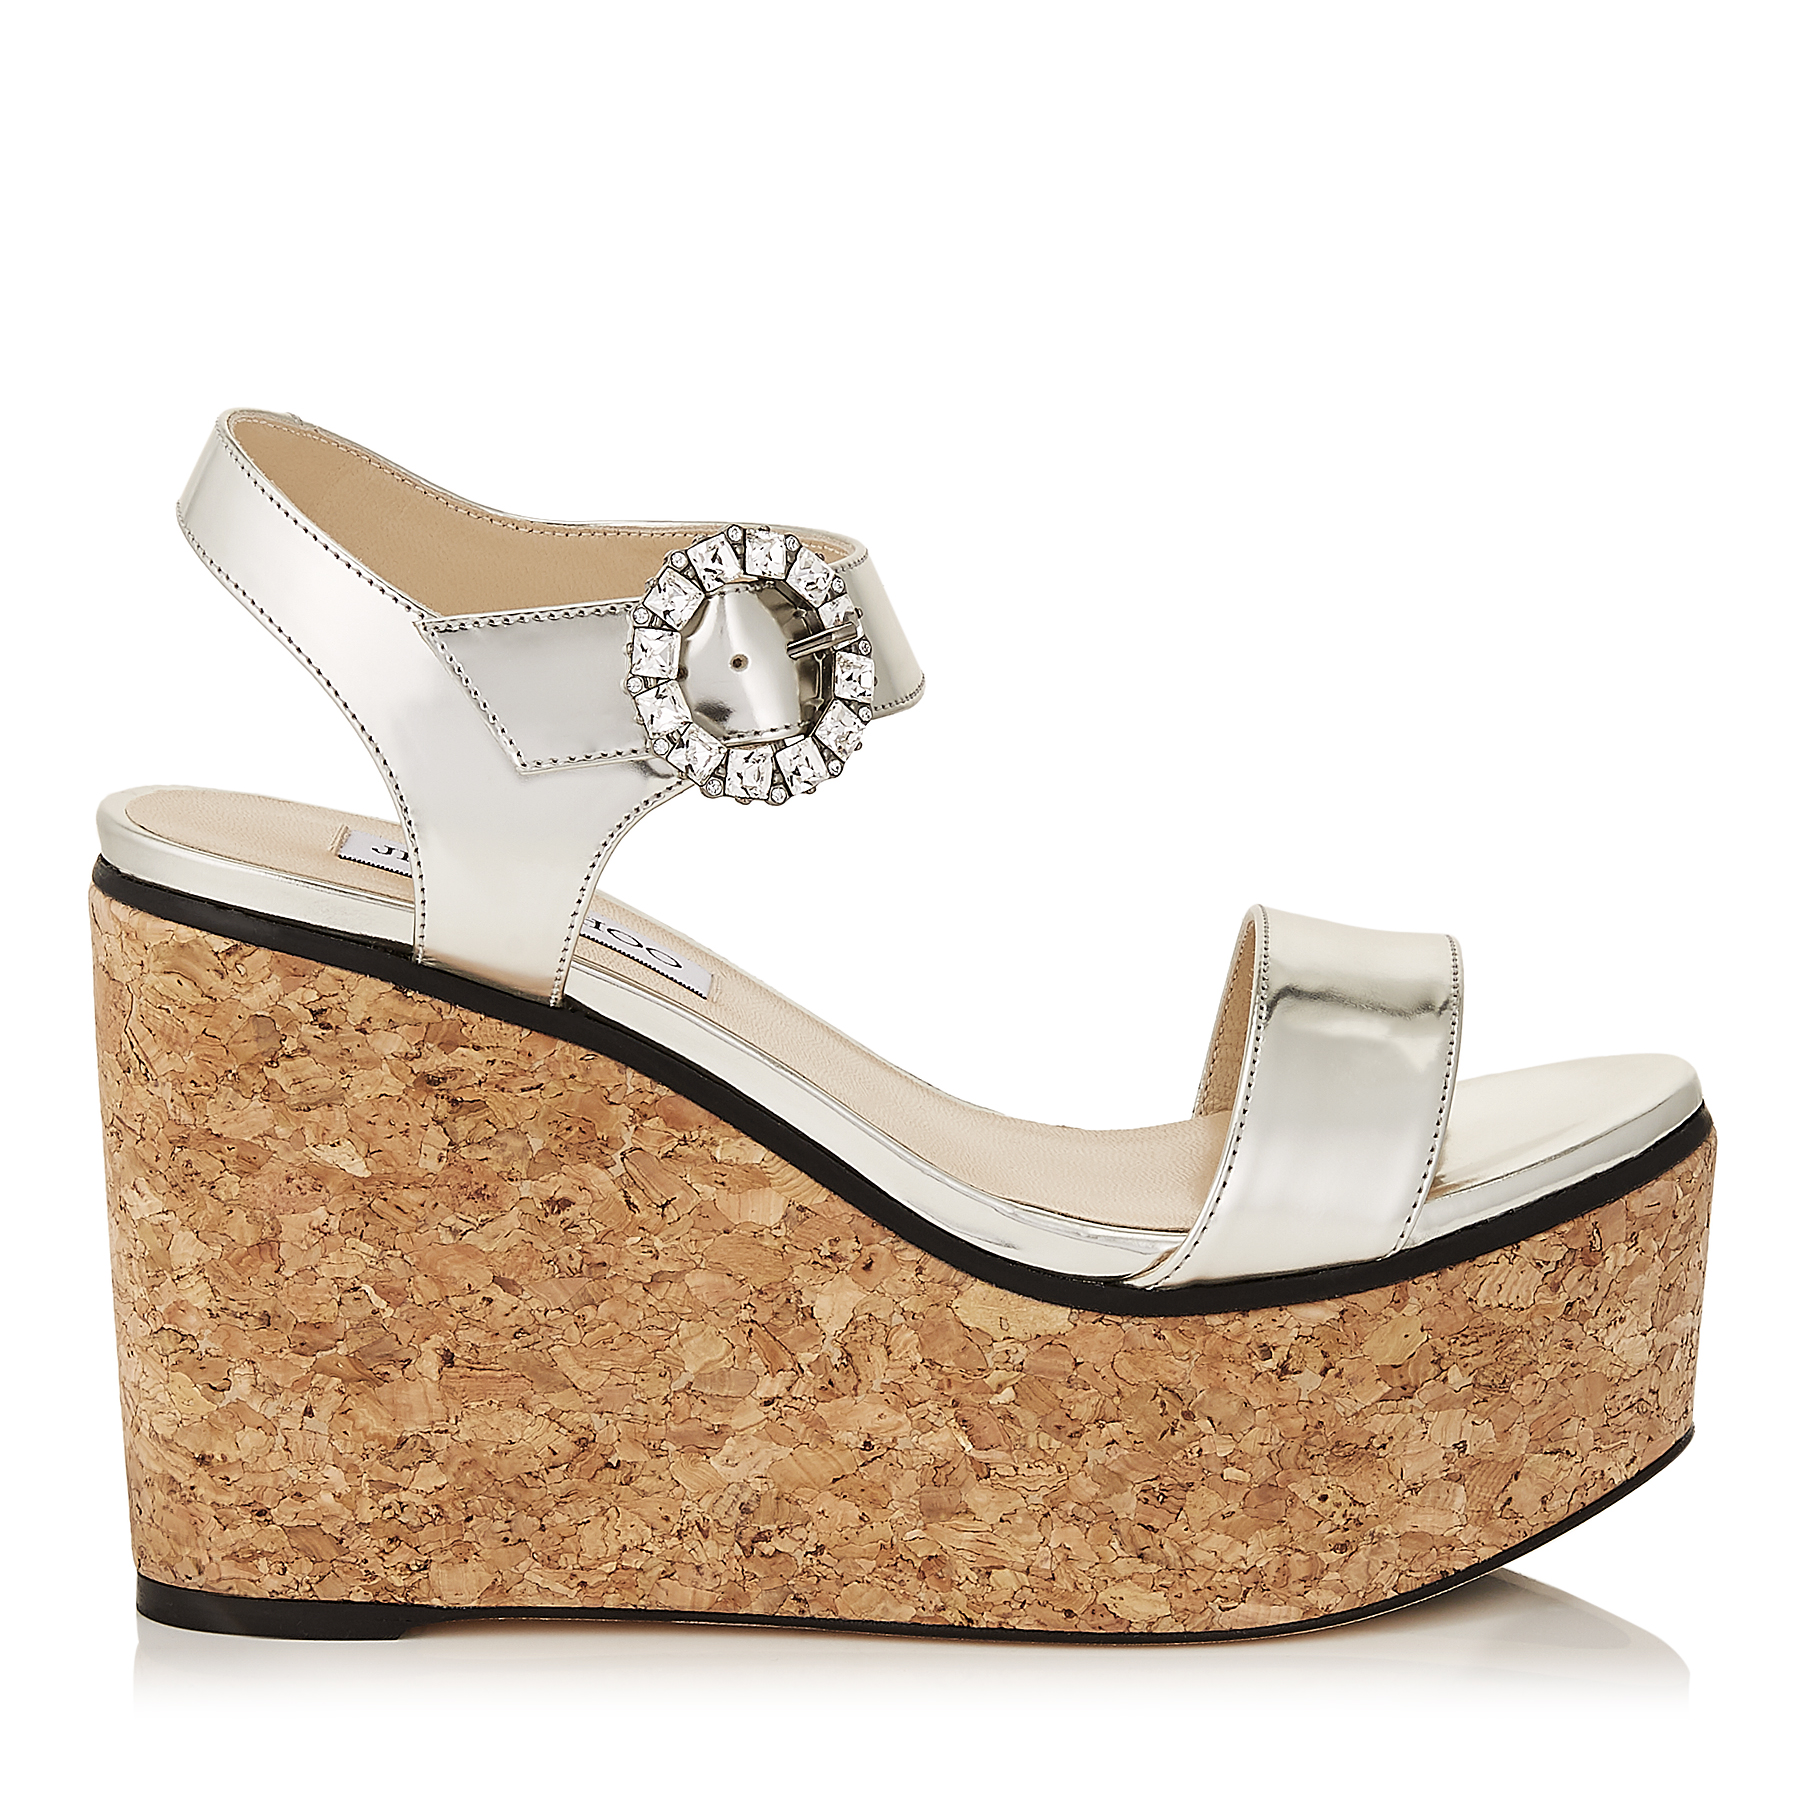 NYLAH 100 Silver Mirror Leather Cork Wedge Sandals with Crystal Buckle by Jimmy Choo